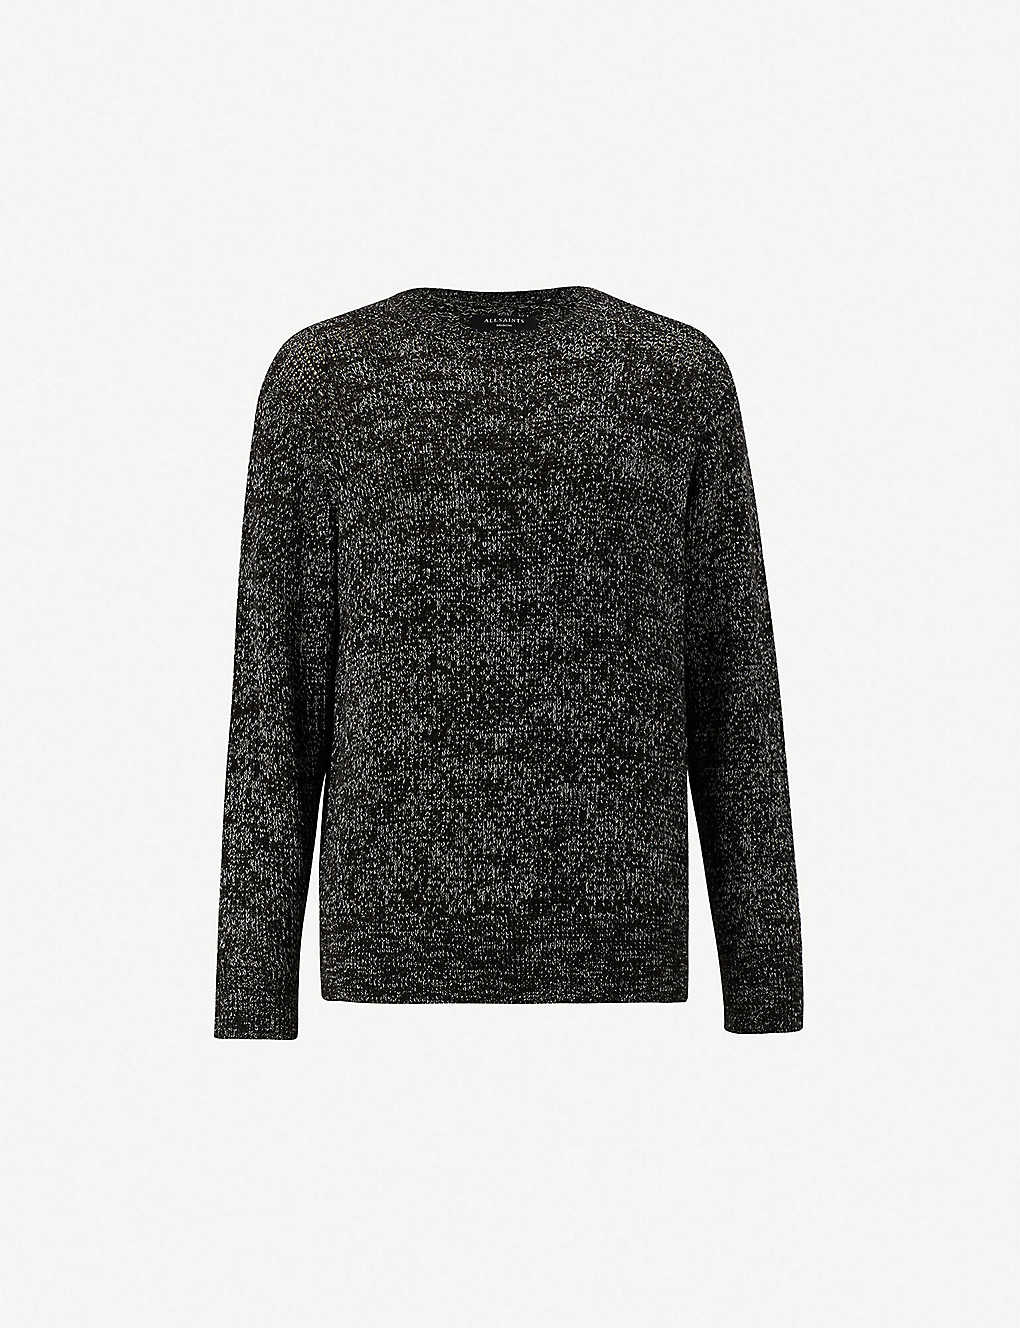 5a867dabb4301 ALLSAINTS - Oskett cotton-knit crewneck jumper